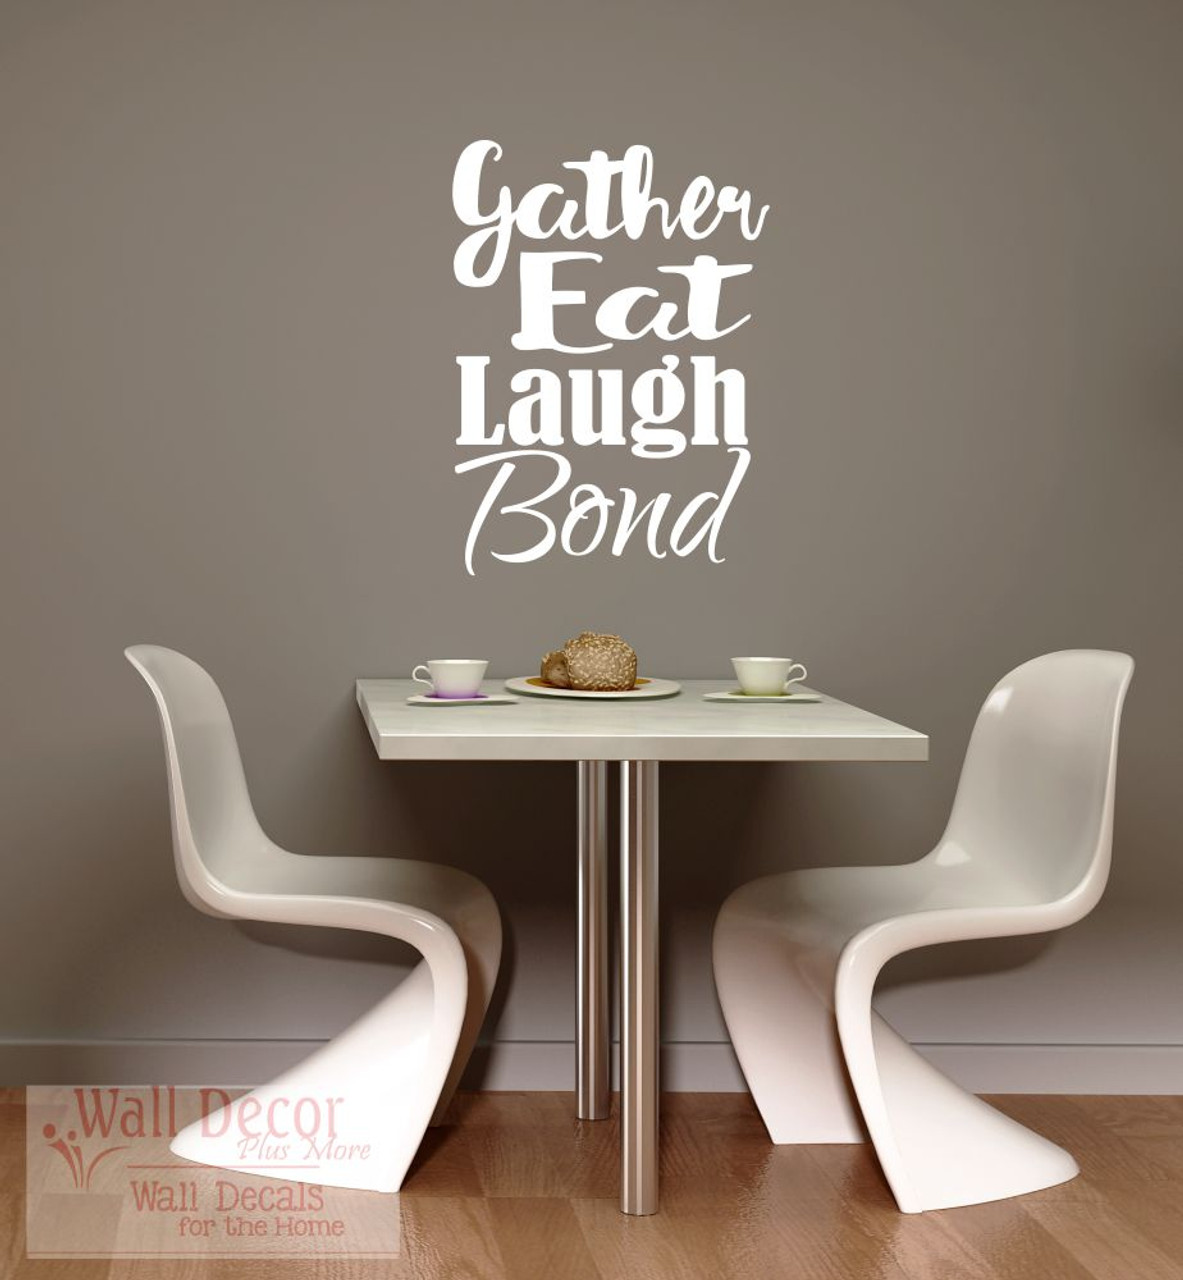 Kitchen Dining And More.Gather Eat Laugh Bond Dining Room Kitchen Wall Decals Quotes